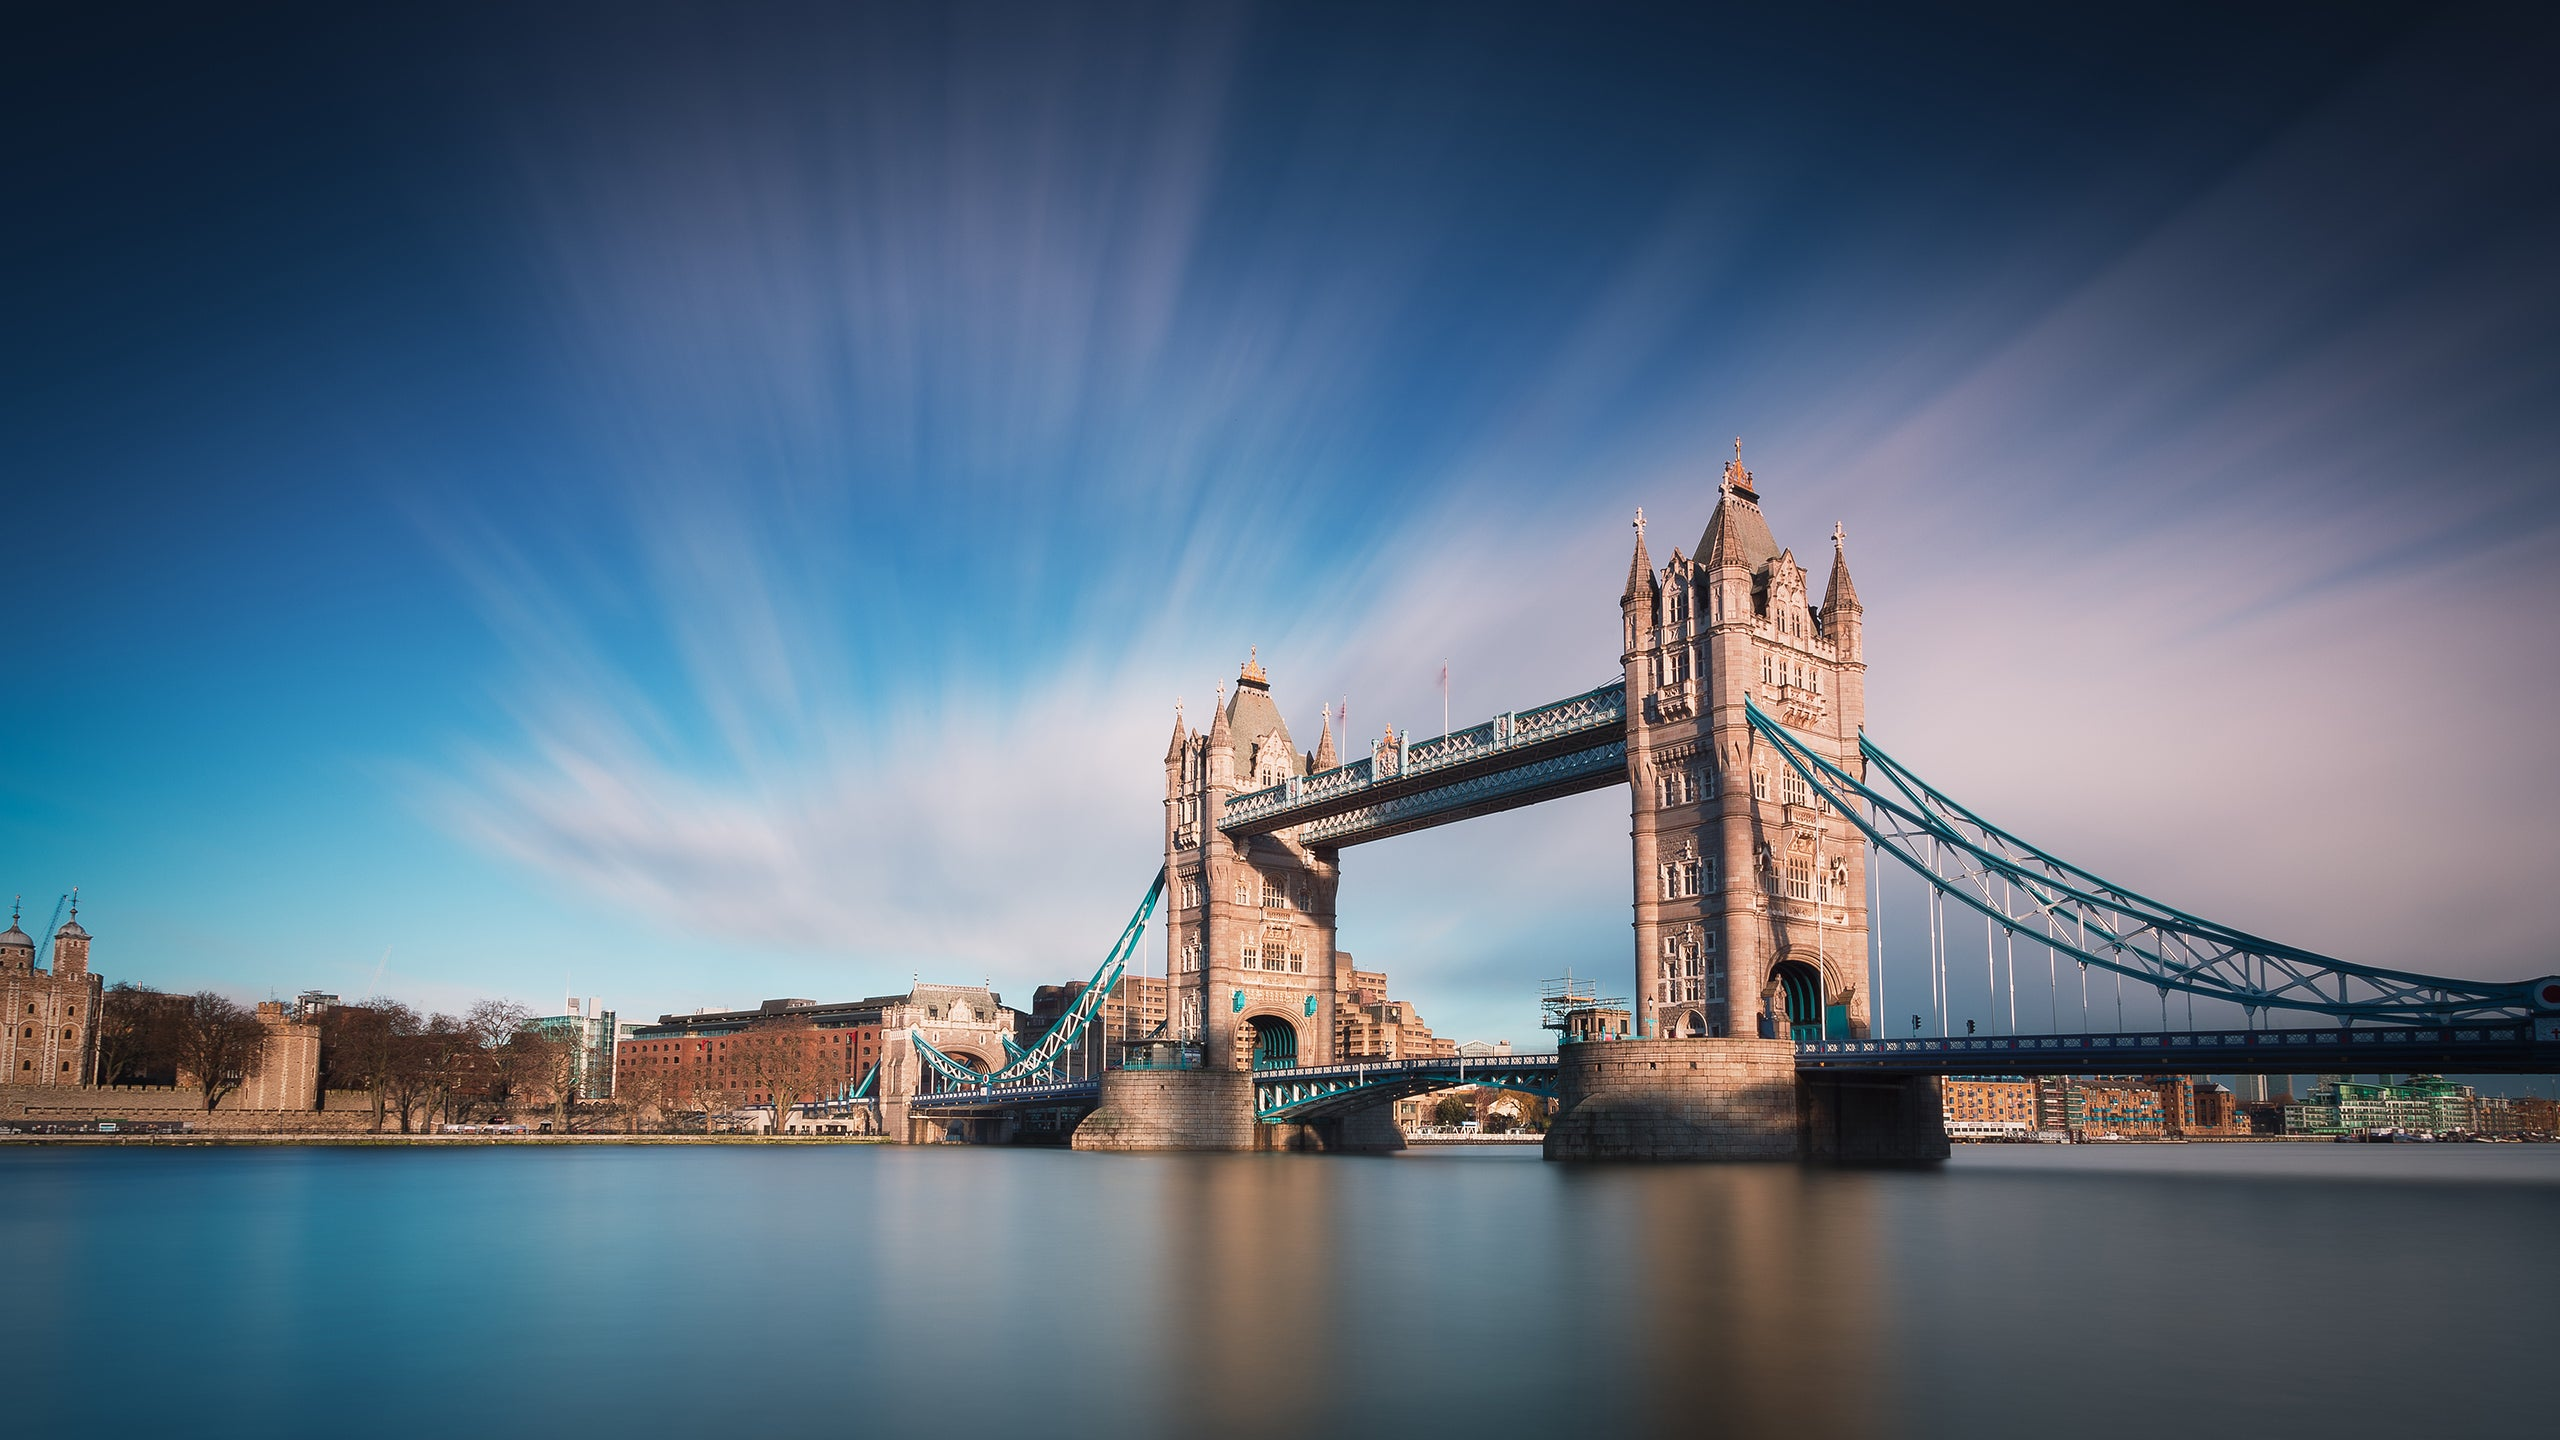 Cross Over Troubled Waters with These Beautiful Bridge Wallpapers